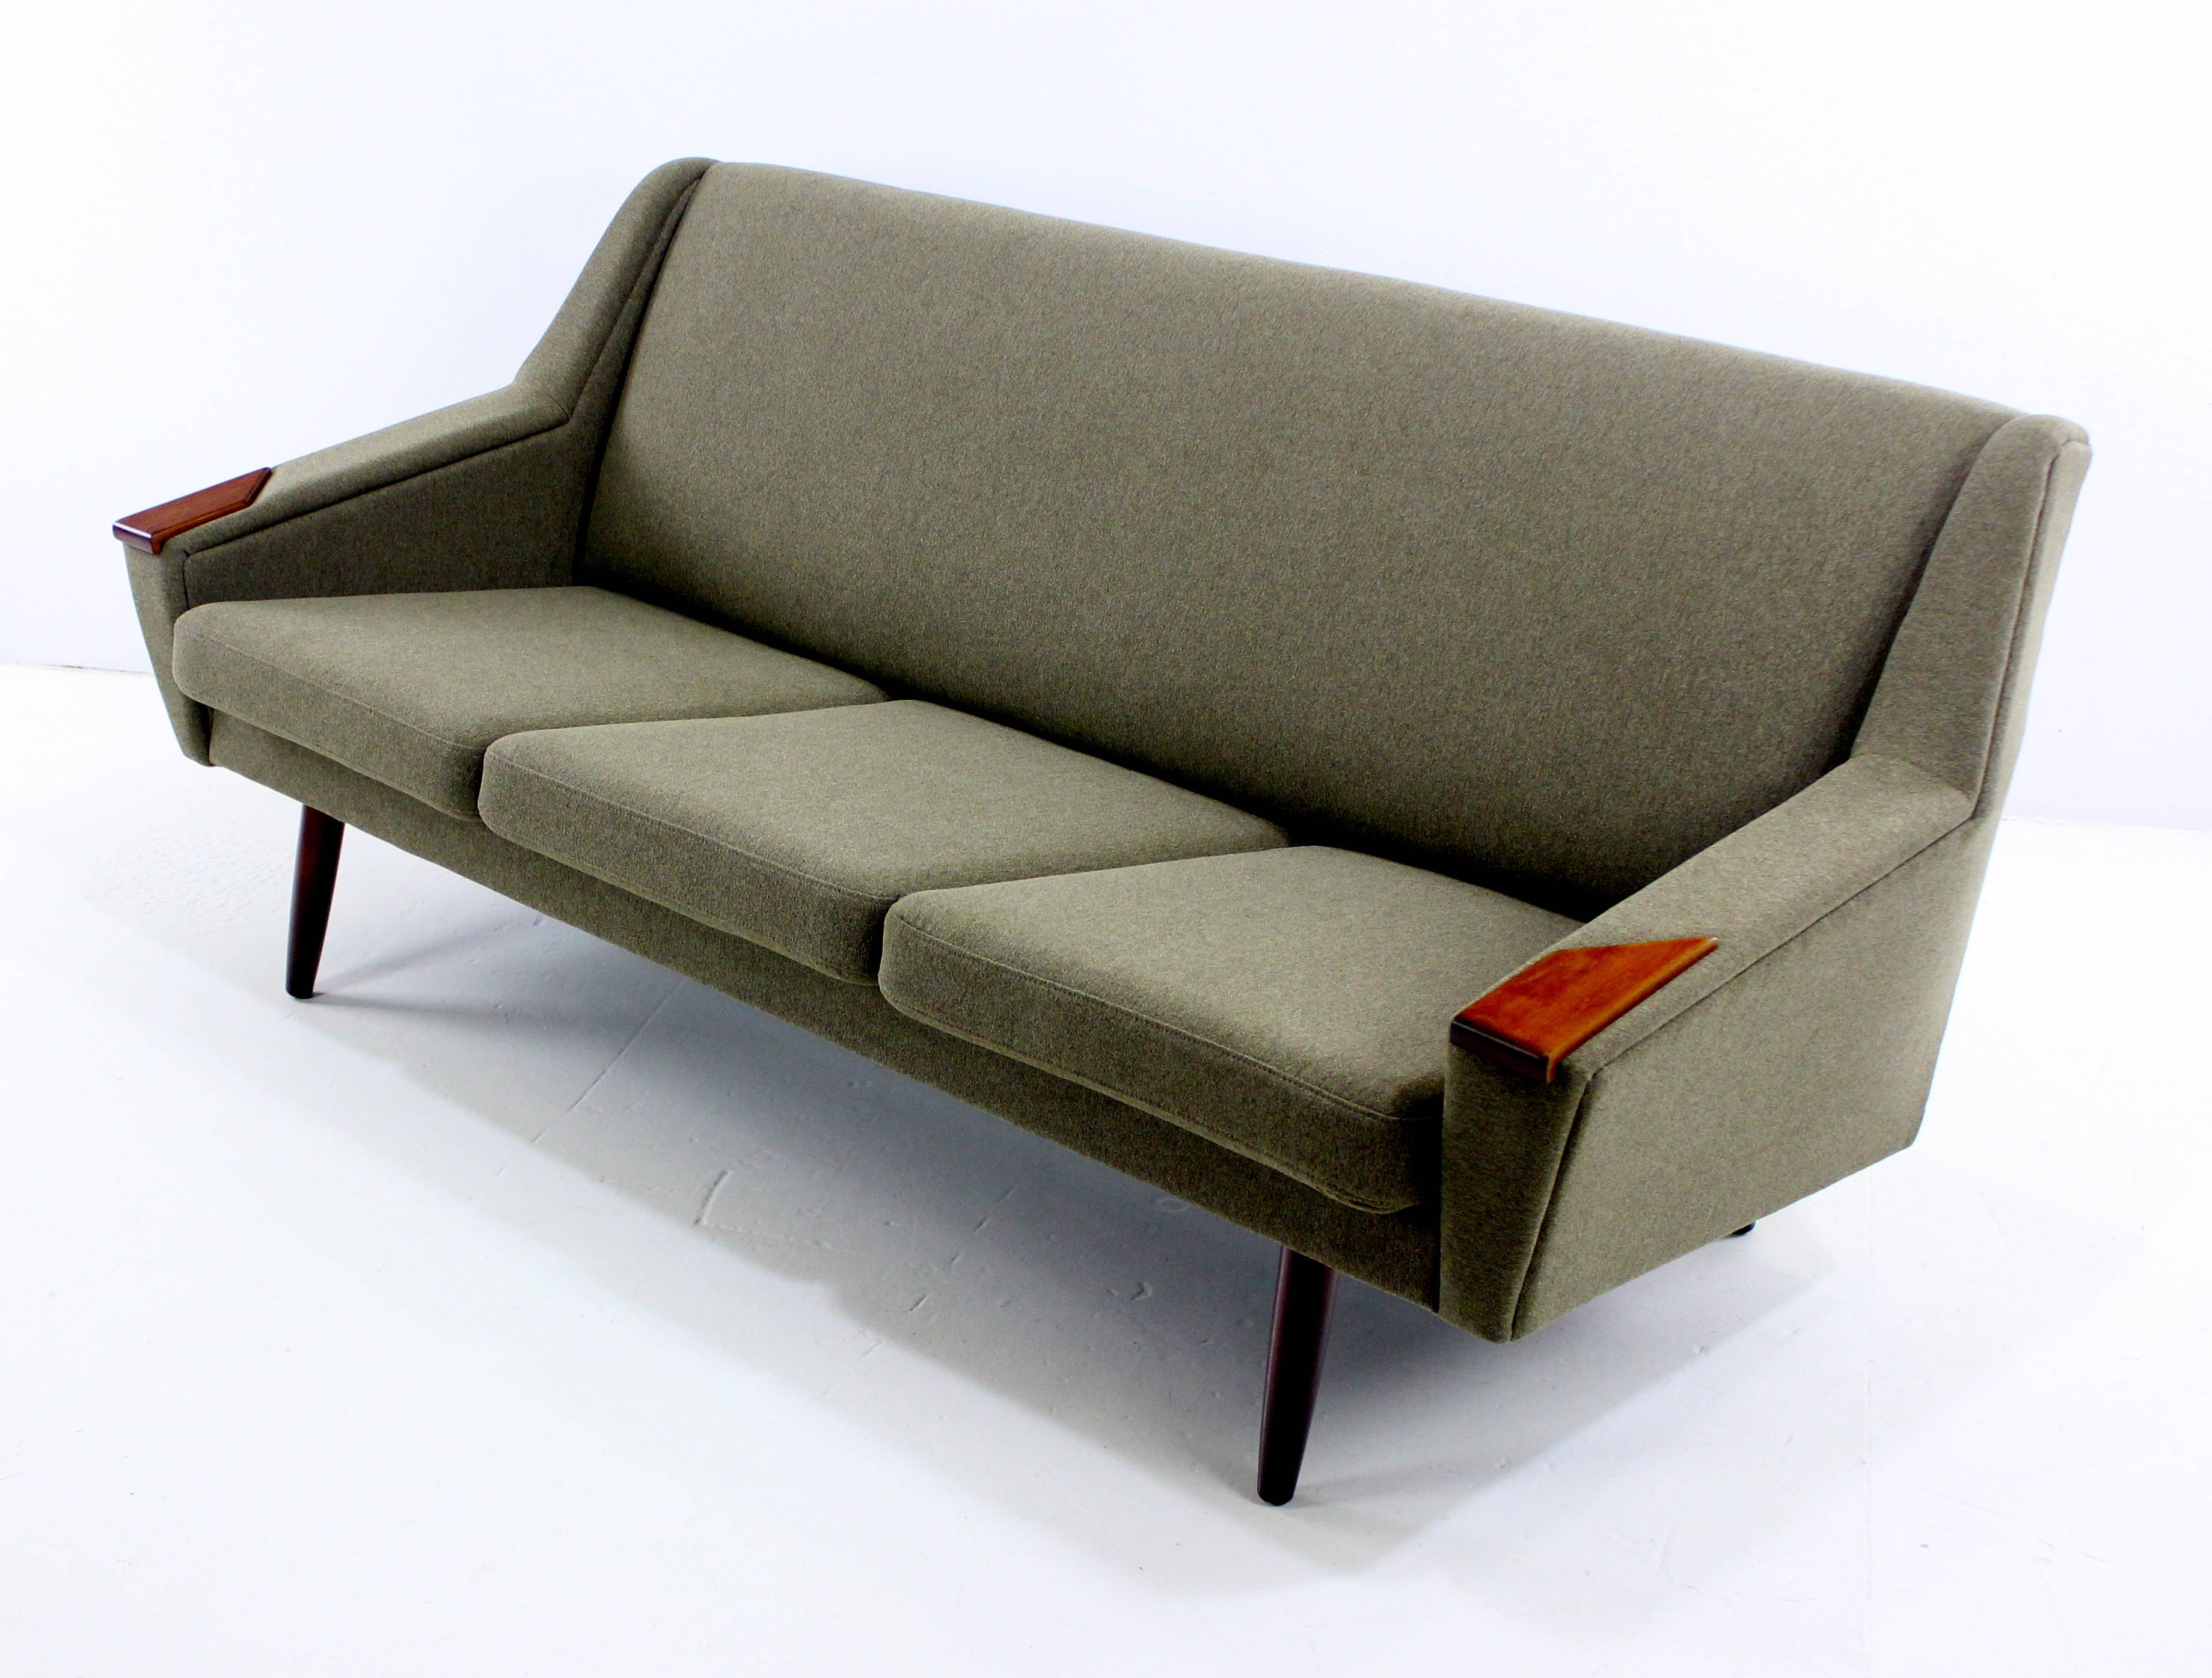 Classic Danish Modern Sofa W / Teak Arm Accents - Lookmodern within Modern Danish Sofas (Image 1 of 15)